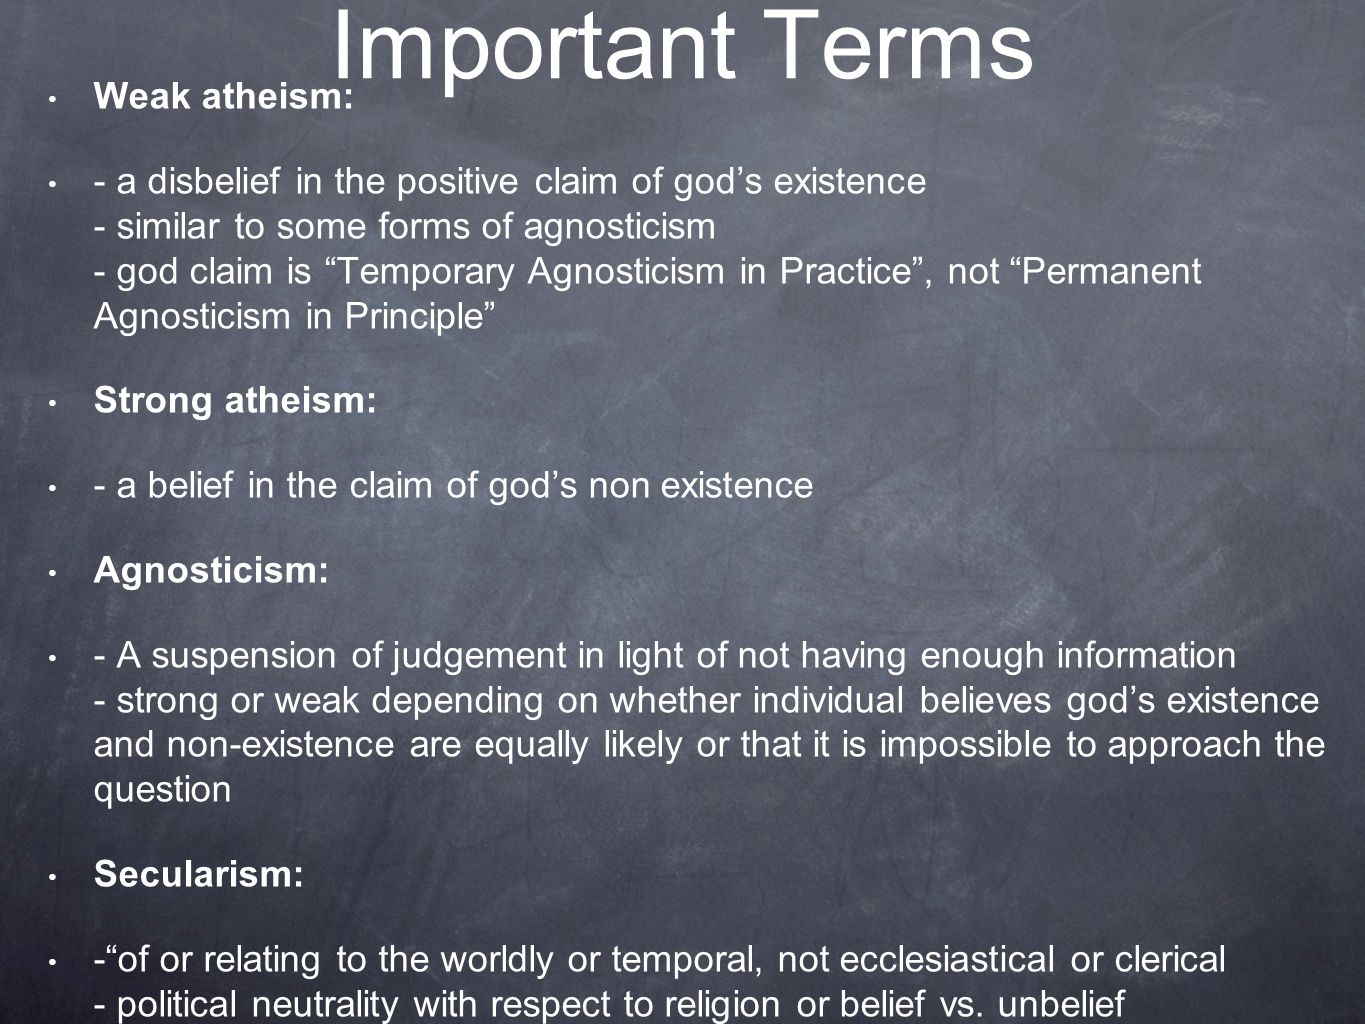 Important Terms Weak atheism: - a disbelief in the positive claim of god's existence - similar to some forms of agnosticism - god claim is Temporary Agnosticism in Practice , not Permanent Agnosticism in Principle Strong atheism: - a belief in the claim of god's non existence Agnosticism: - A suspension of judgement in light of not having enough information - strong or weak depending on whether individual believes god's existence and non-existence are equally likely or that it is impossible to approach the question Secularism: - of or relating to the worldly or temporal, not ecclesiastical or clerical - political neutrality with respect to religion or belief vs.